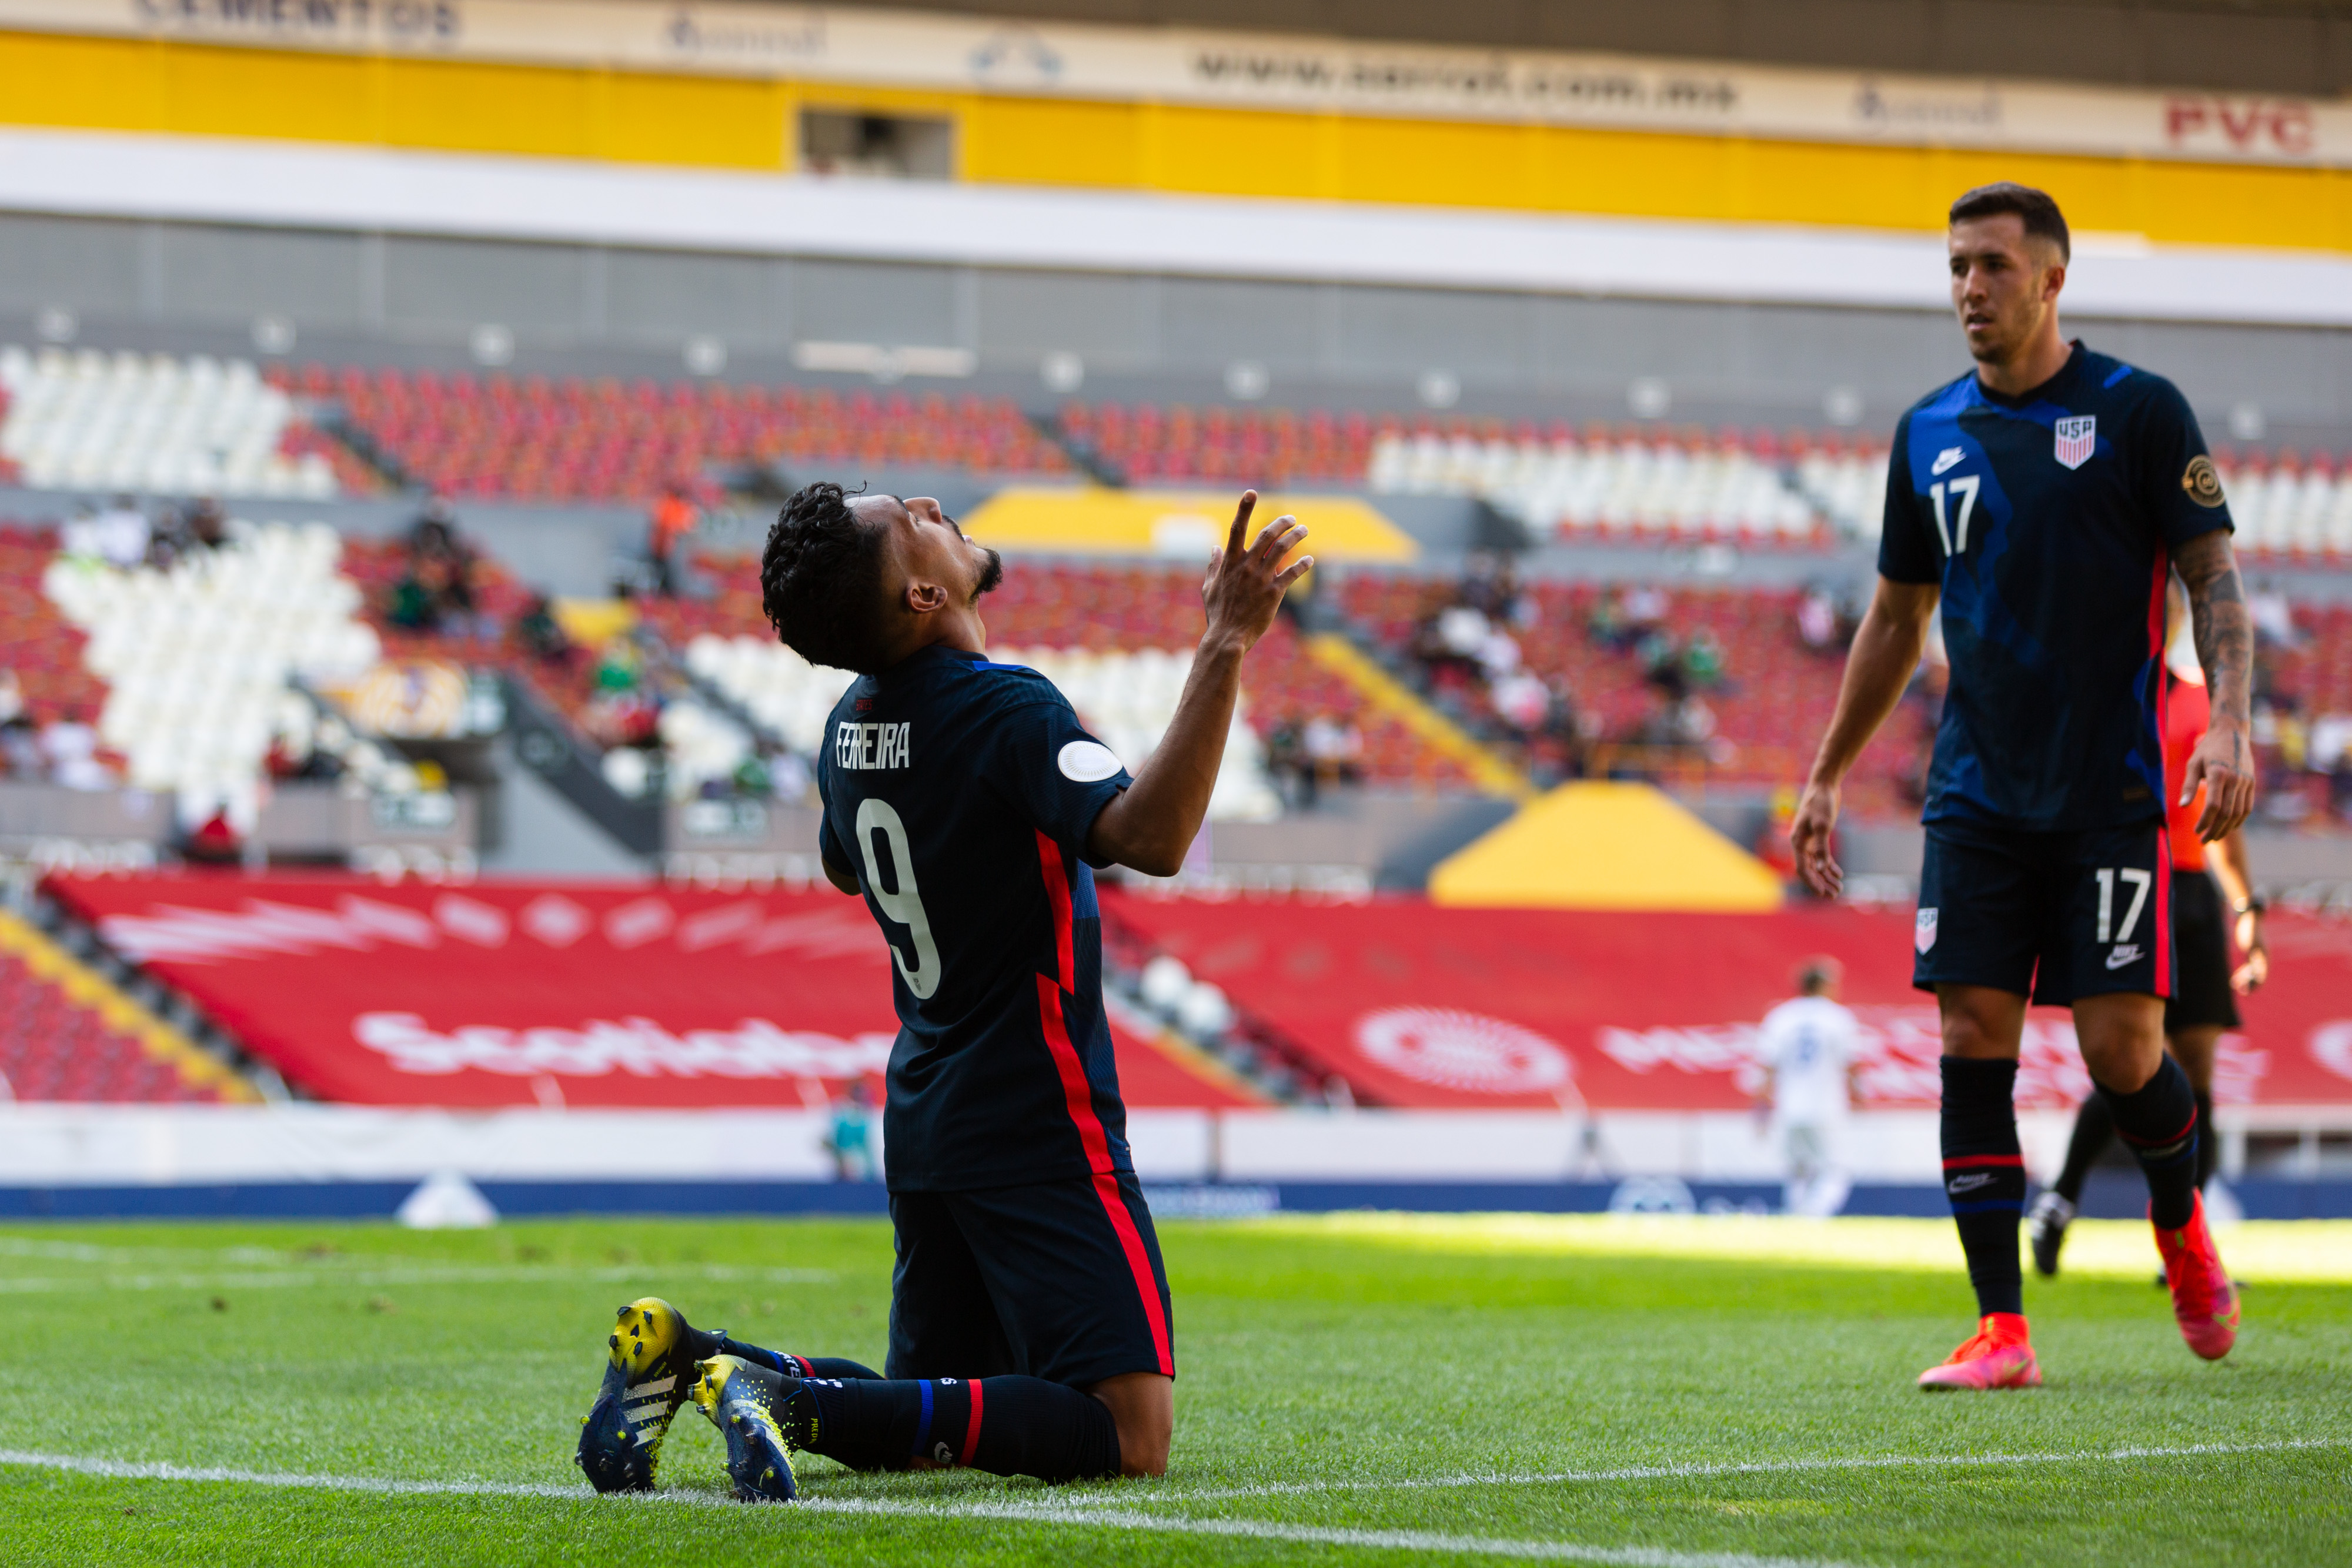 USA v Costa Rica - 2020 Concacaf Men's Olympic Qualifying